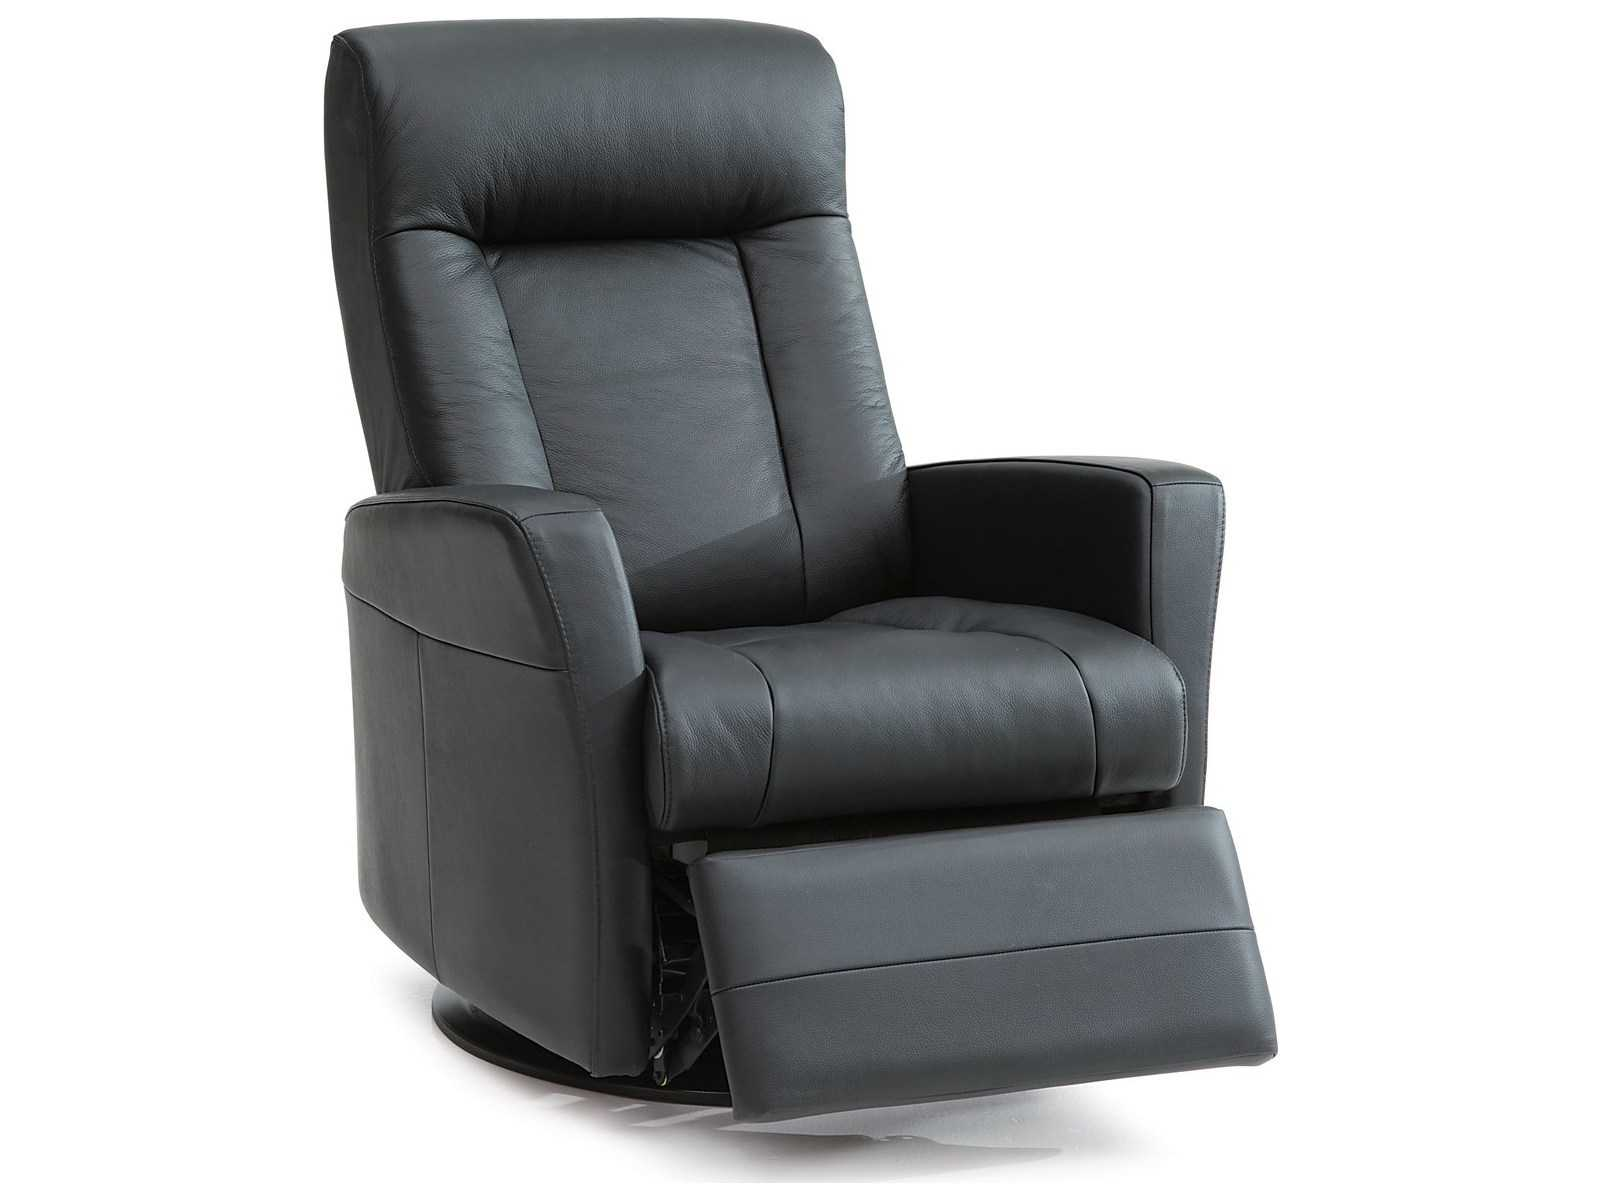 Superieur ... Palliser Banff II Swivel Glider Recliner Chair ...